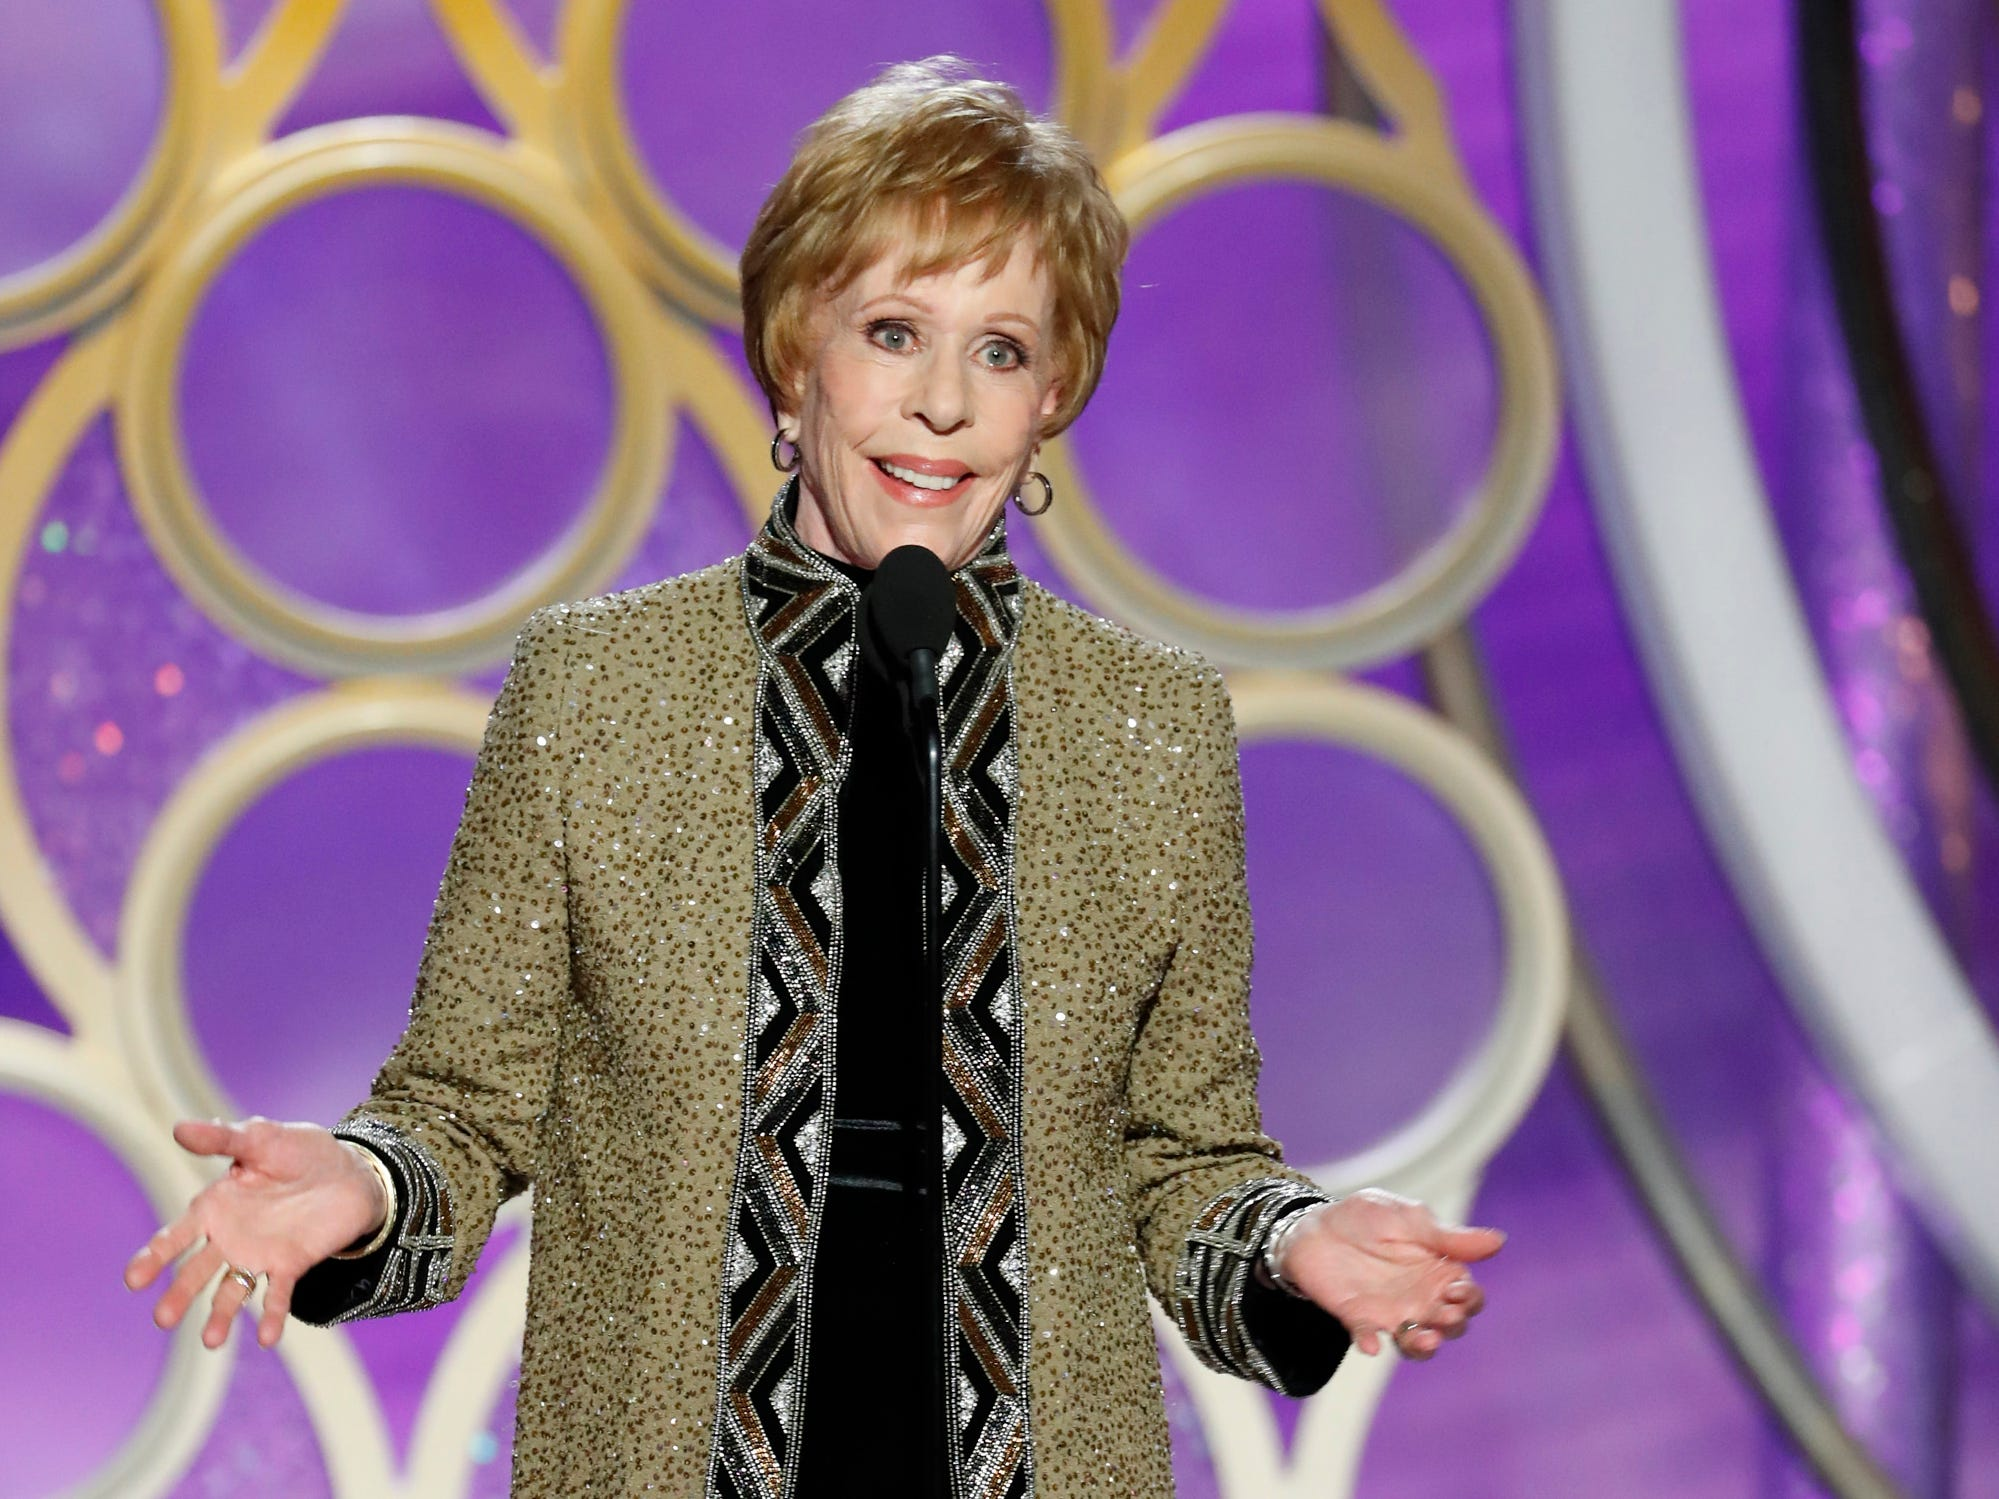 Carol Burnett accepts the Carol Burnett TV Achievement Award during the 76th Golden Globe Awards.